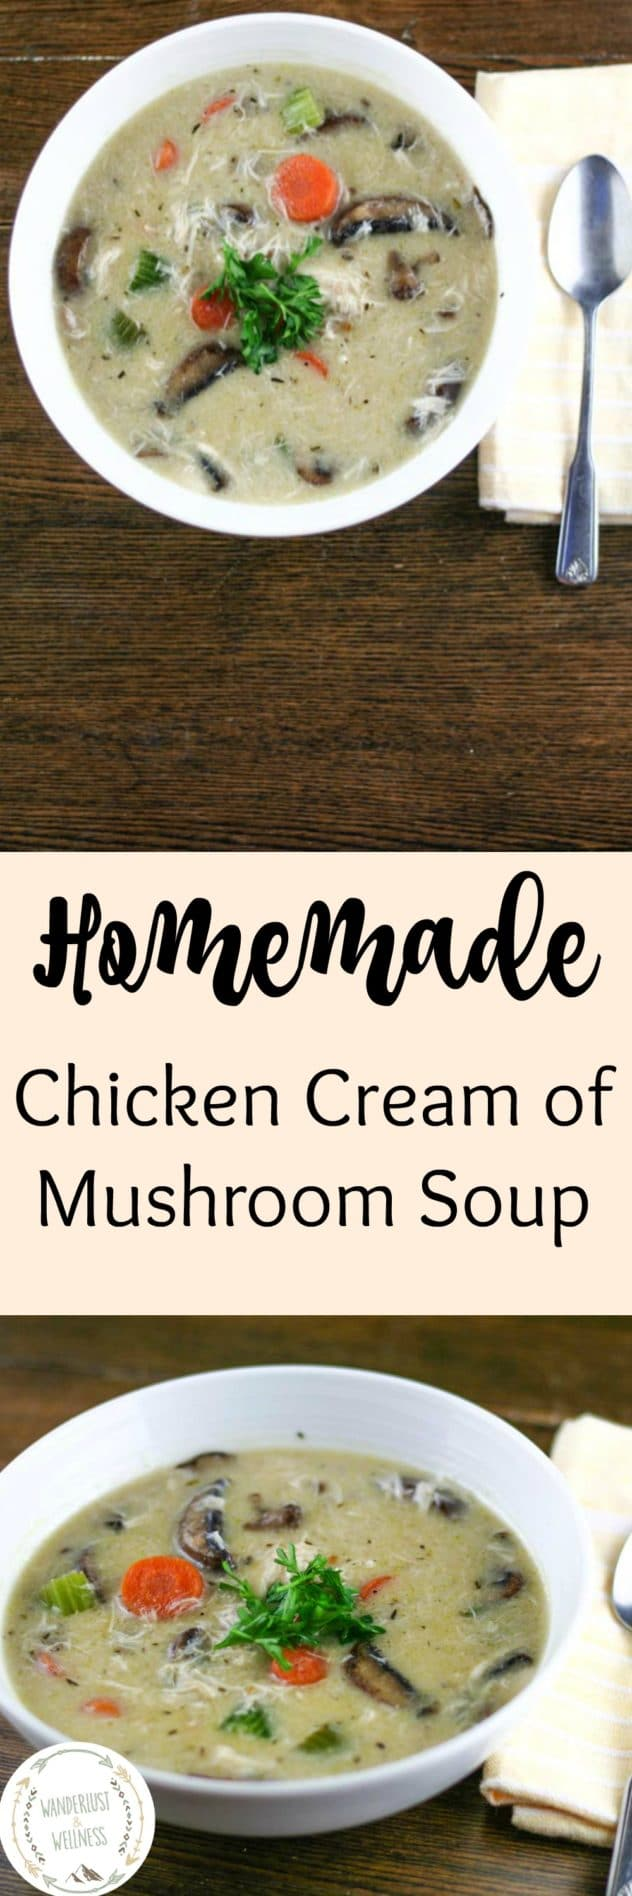 Homemade Chicken Cream of Mushroom Soup